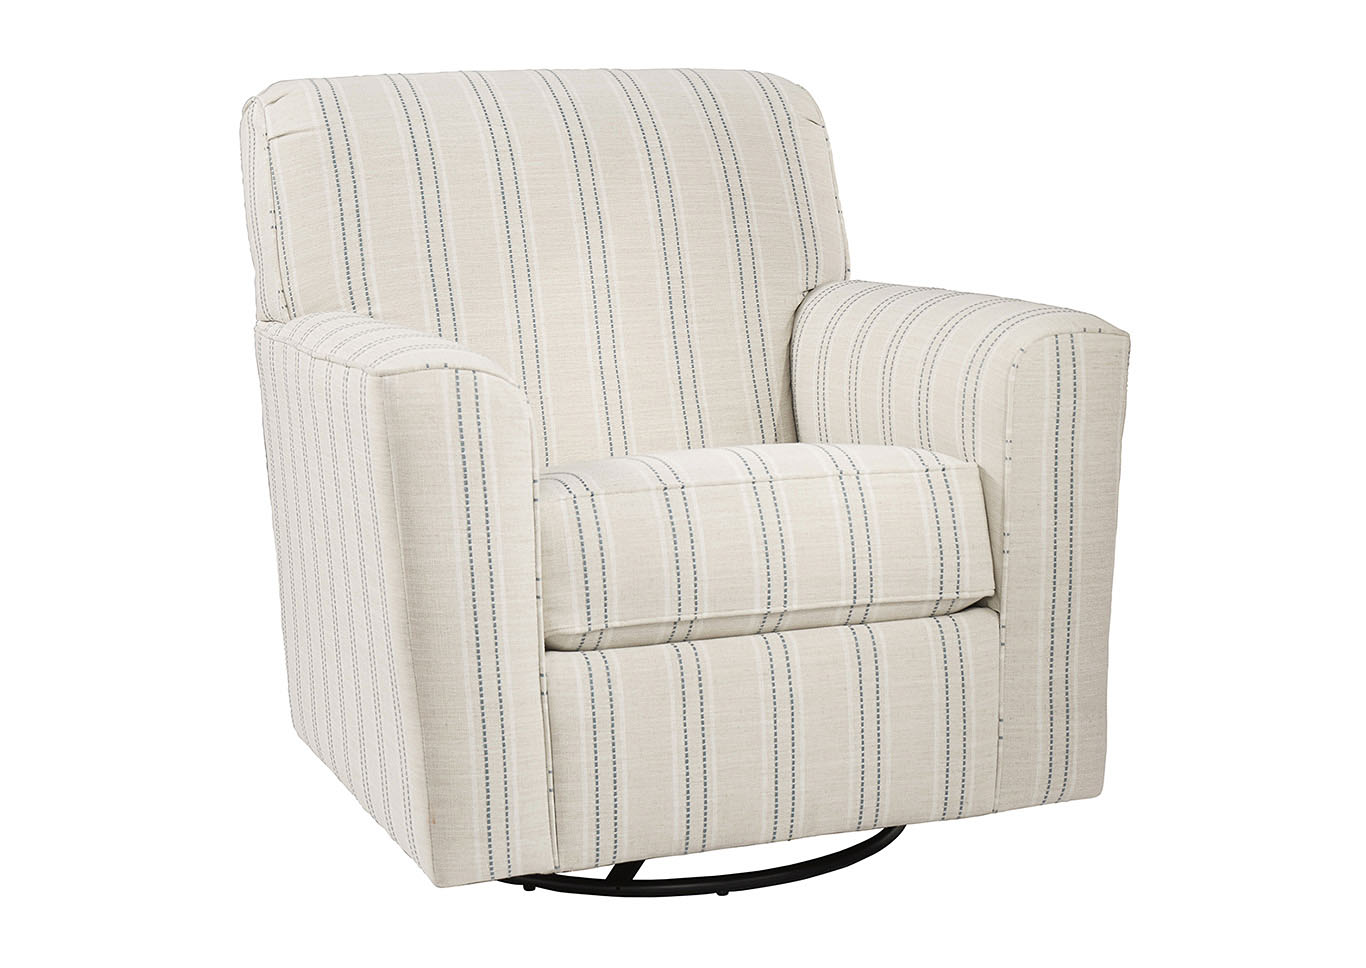 Pleasing Furniture American Furniture Of Slidell Alandari Gray Caraccident5 Cool Chair Designs And Ideas Caraccident5Info